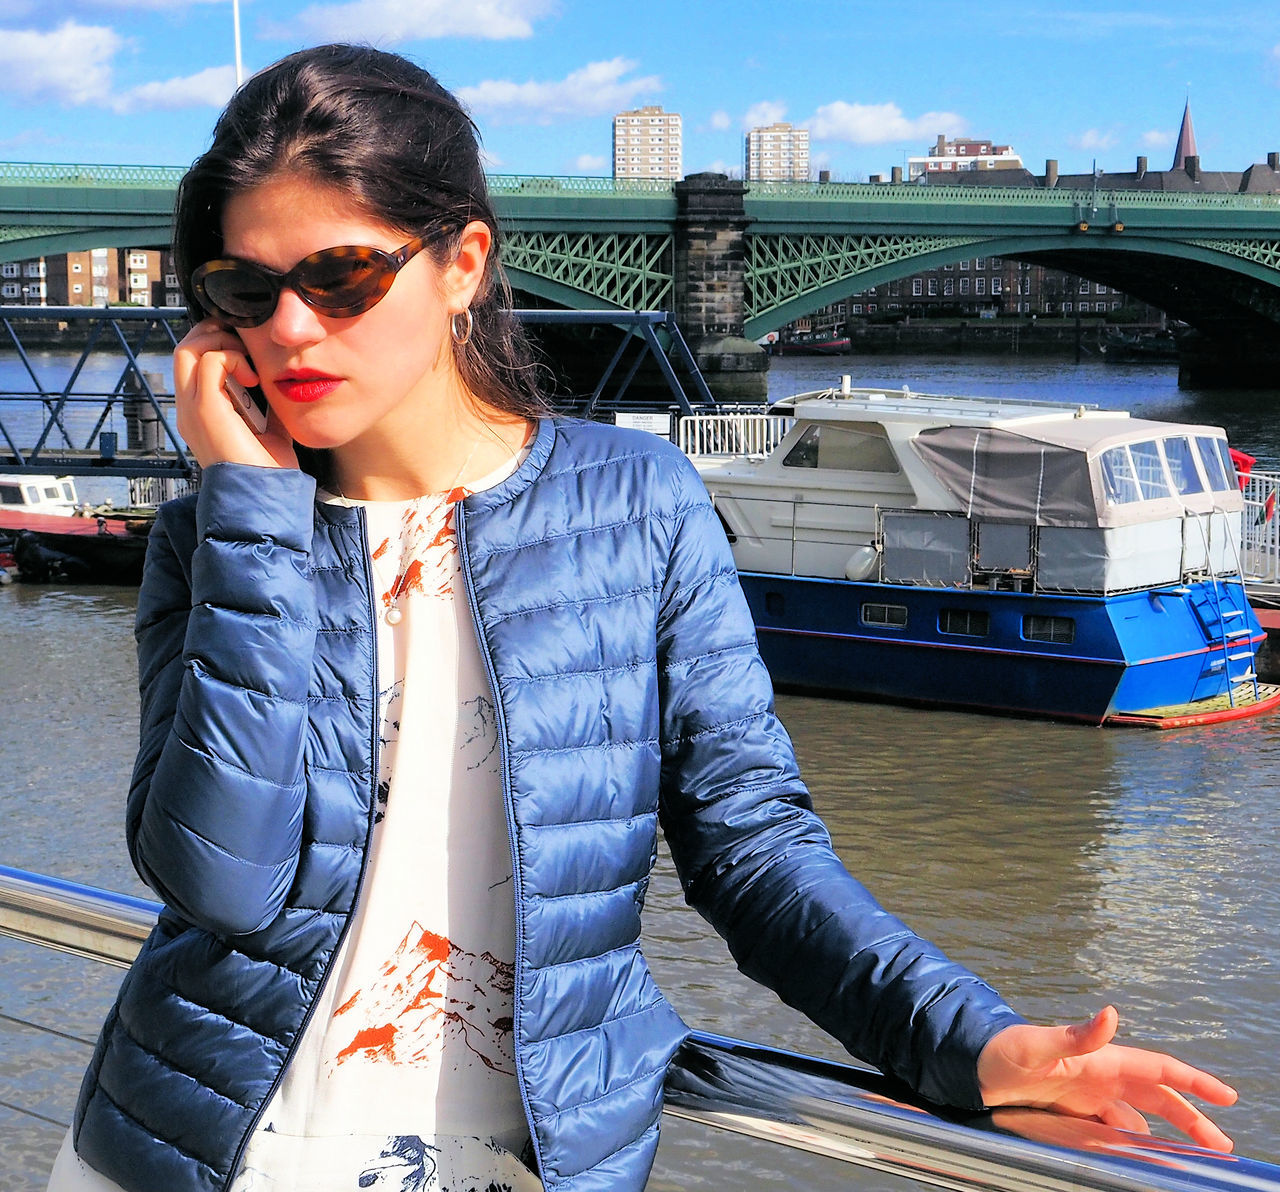 Agitated woman on the phone Mobile Networks Agitated Agitated Woman On The Phone Angry Angrybirds Blue Jacket Bt Call Charges City Mobile Phones Nautical Vessel One Woman Only Phone Conversation Phone Tarrifs Relaxing River Side River Thames Sunglasses Talking On The Phone Young Women